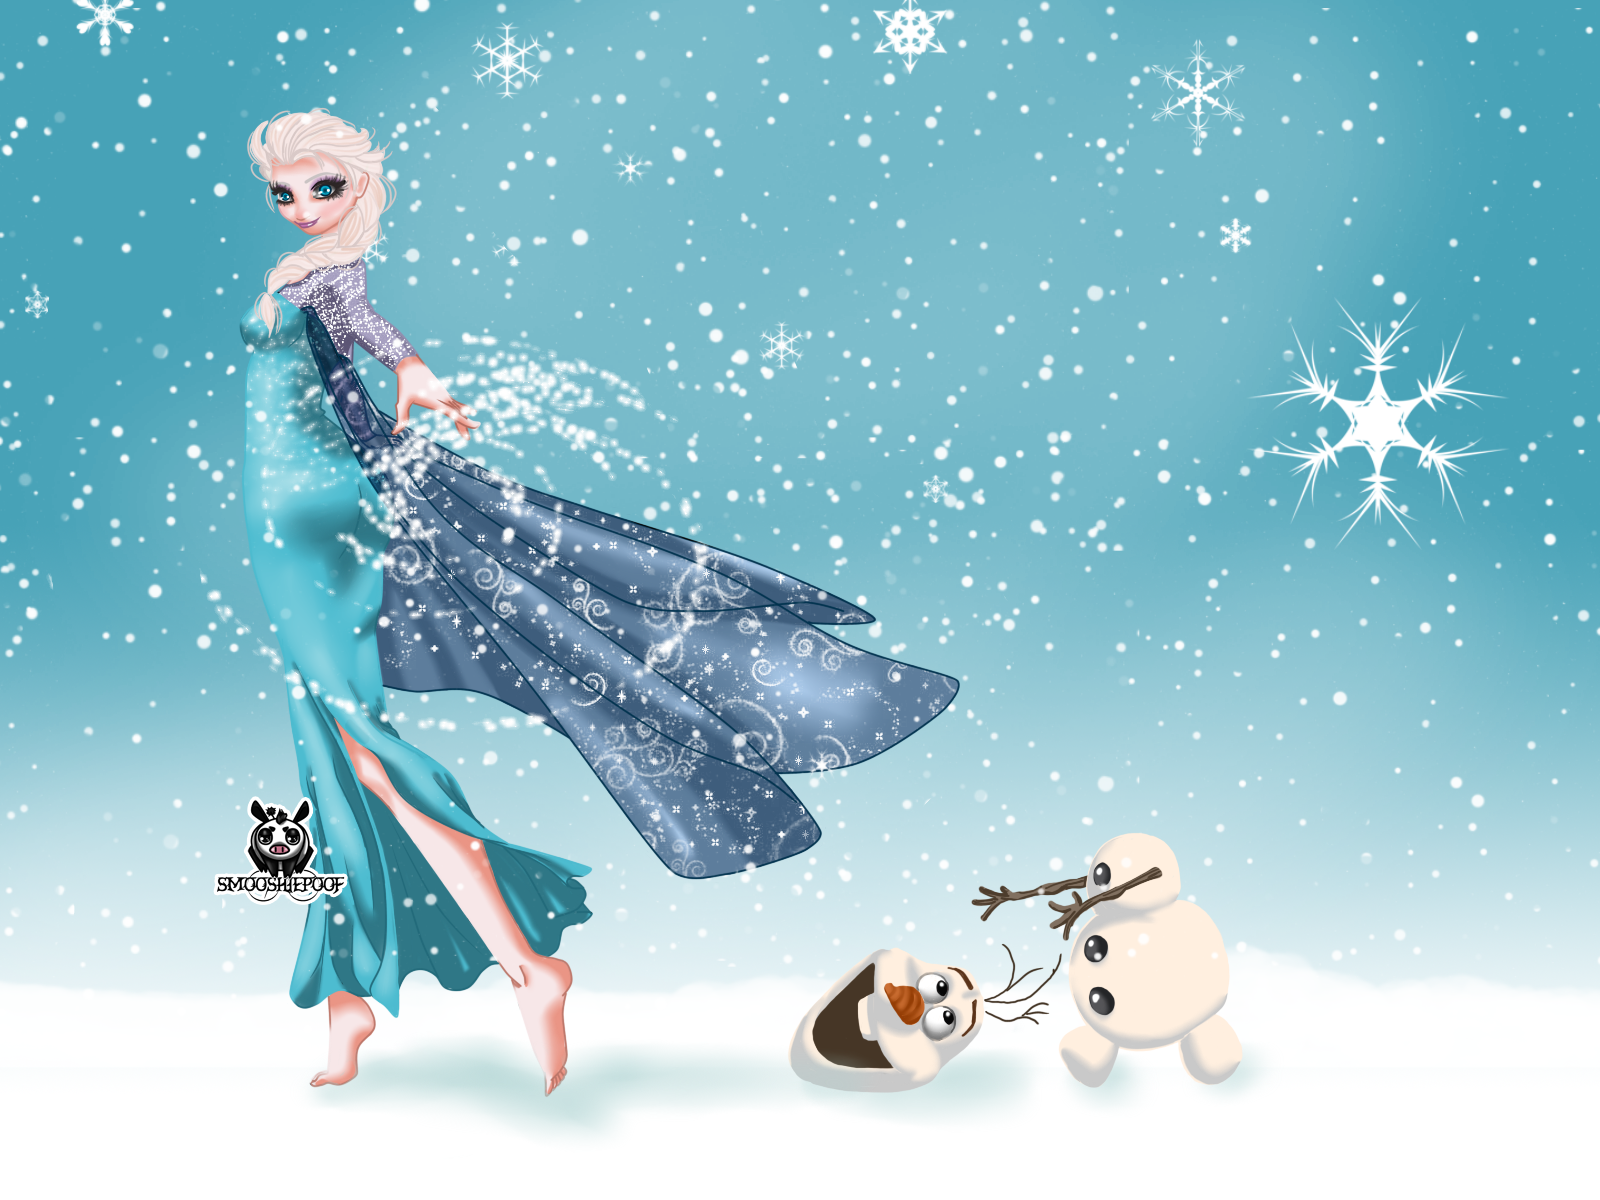 Frozen Movie Wallpaper Olaf Frozen wallpap 1600x1200